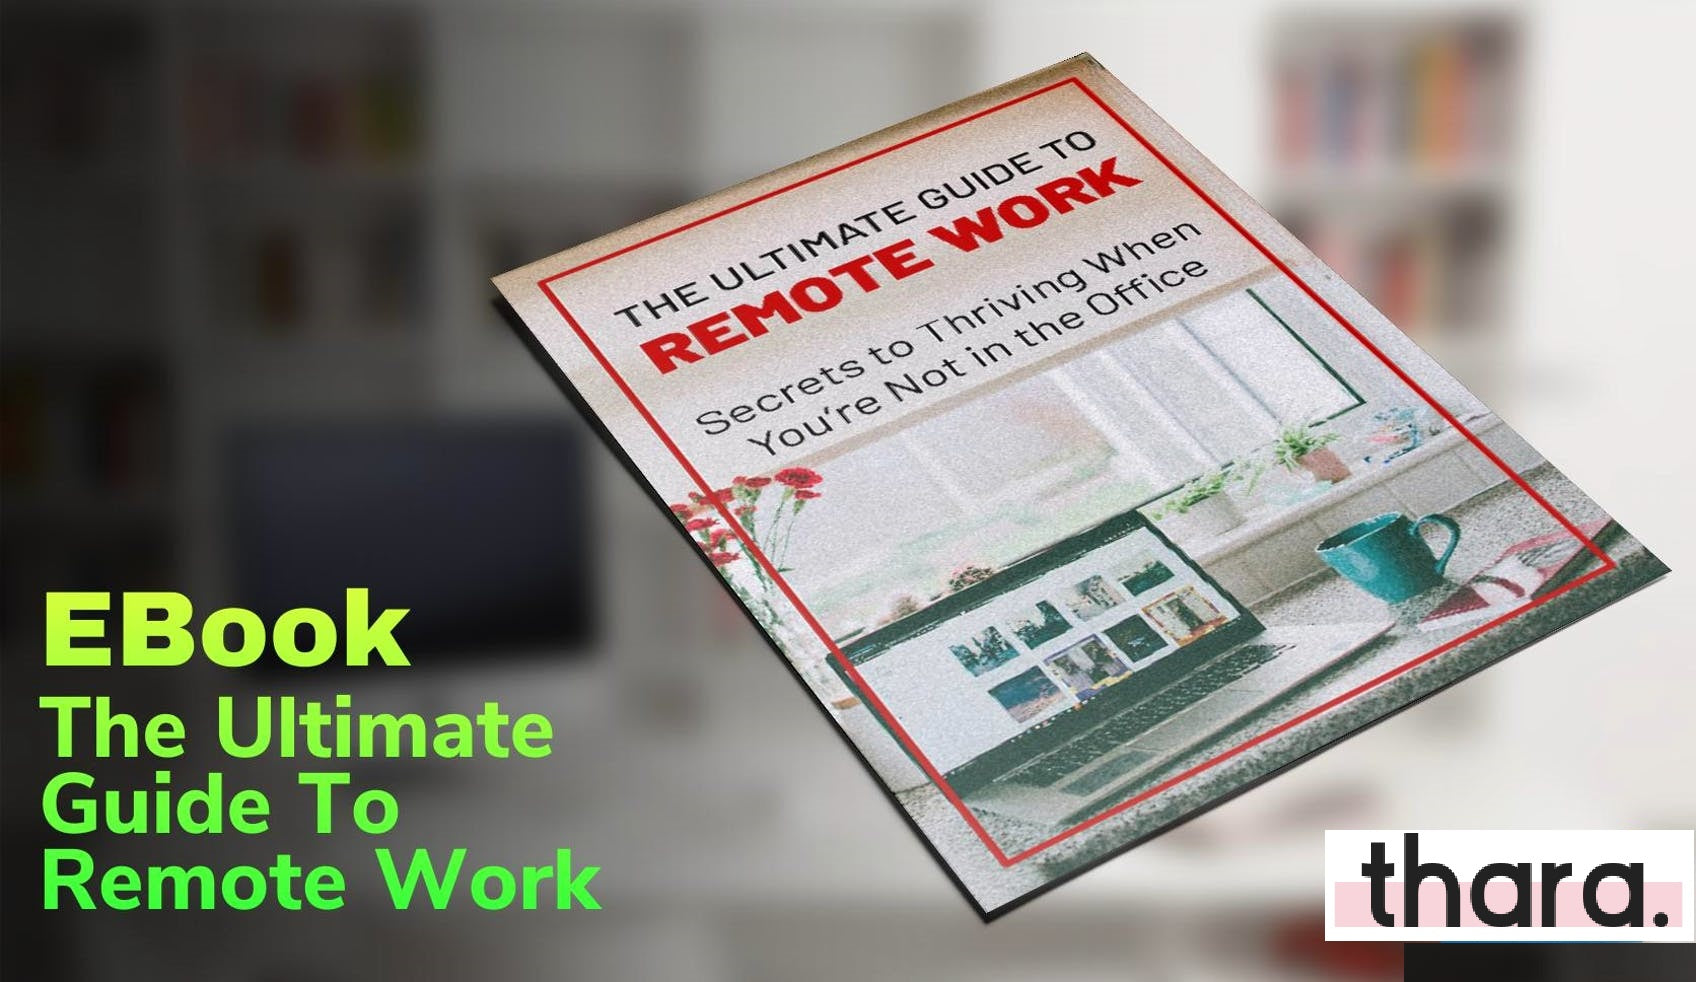 The Ultimate Guide To Remote Work, Best-Seller EBook